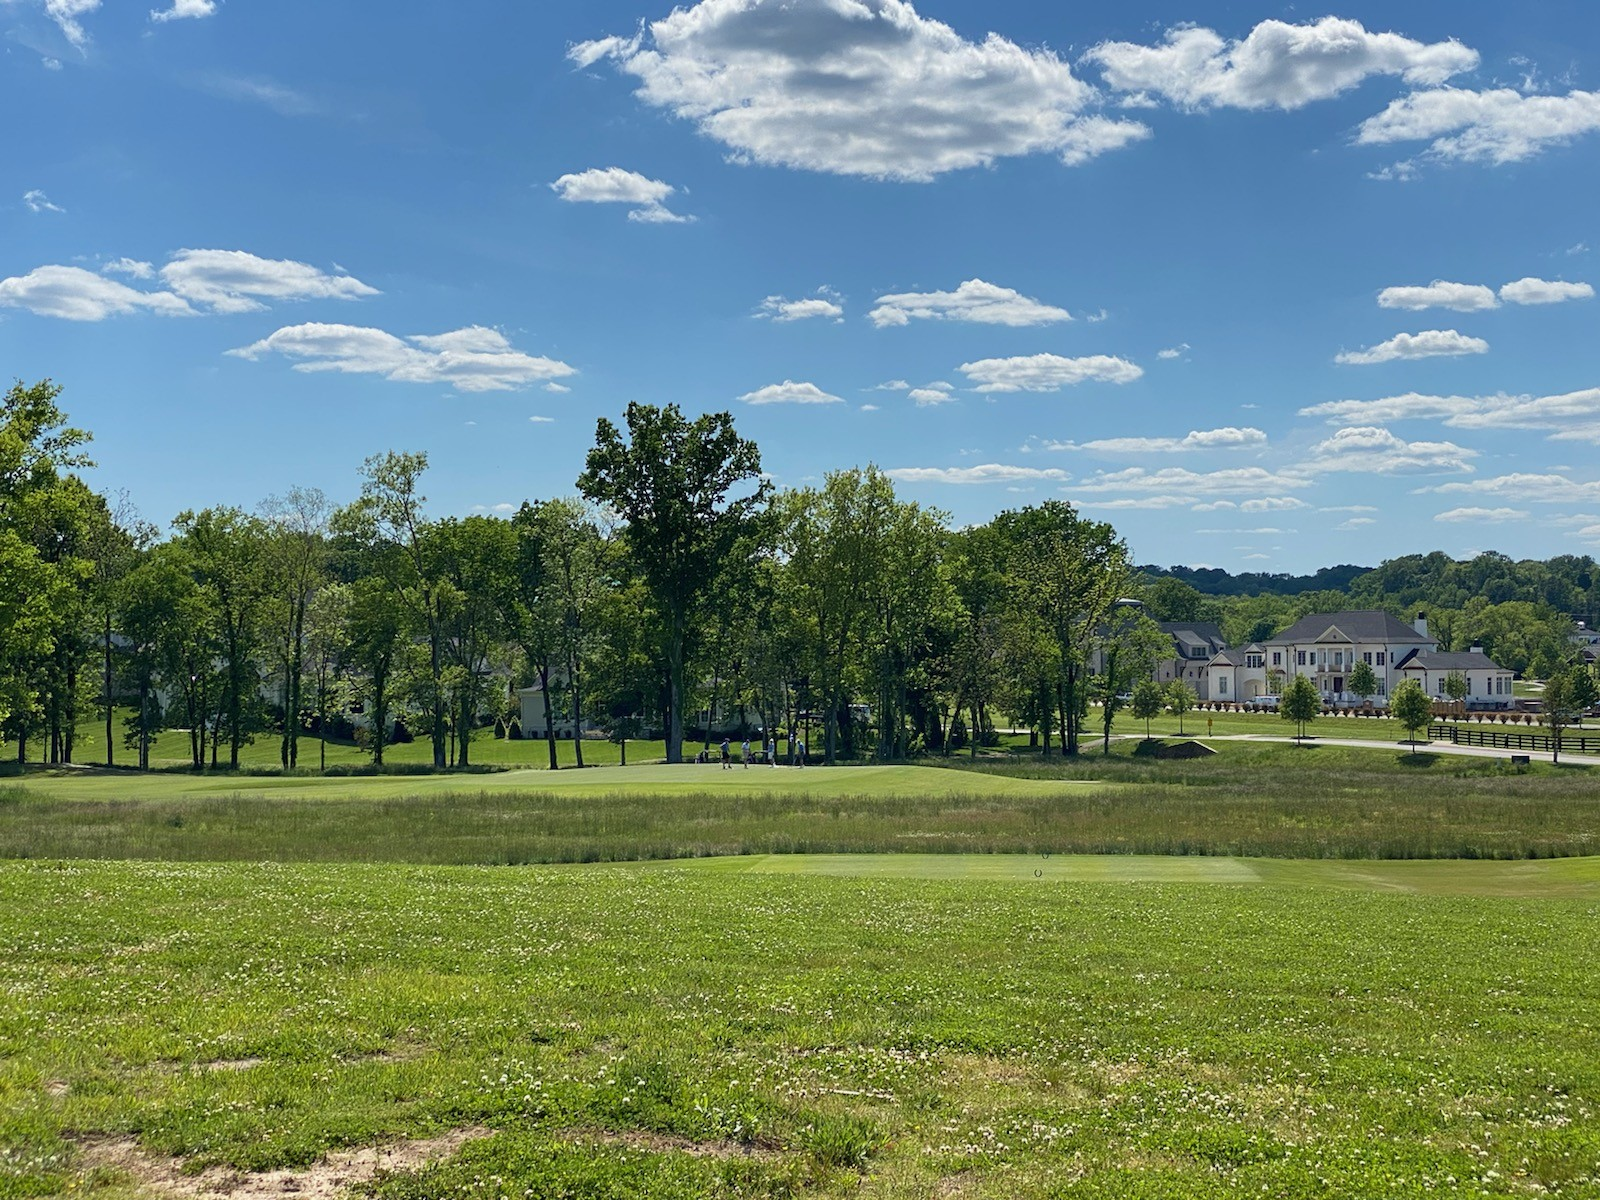 A one-of-a-kind golf course homesite overlooking the 11th tee box, 12th green &13th tee box of our Greg Norman Signature golf course along w/ views of our Fishing Camp and TN ridge lines in the distance! This homesite is .45 acre and is tucked into one of our few fully-developed cul-de-sacs, so there will be no more construction around this home in the future.  If you are a golfer, there are no better homesites than this one at The Grove!